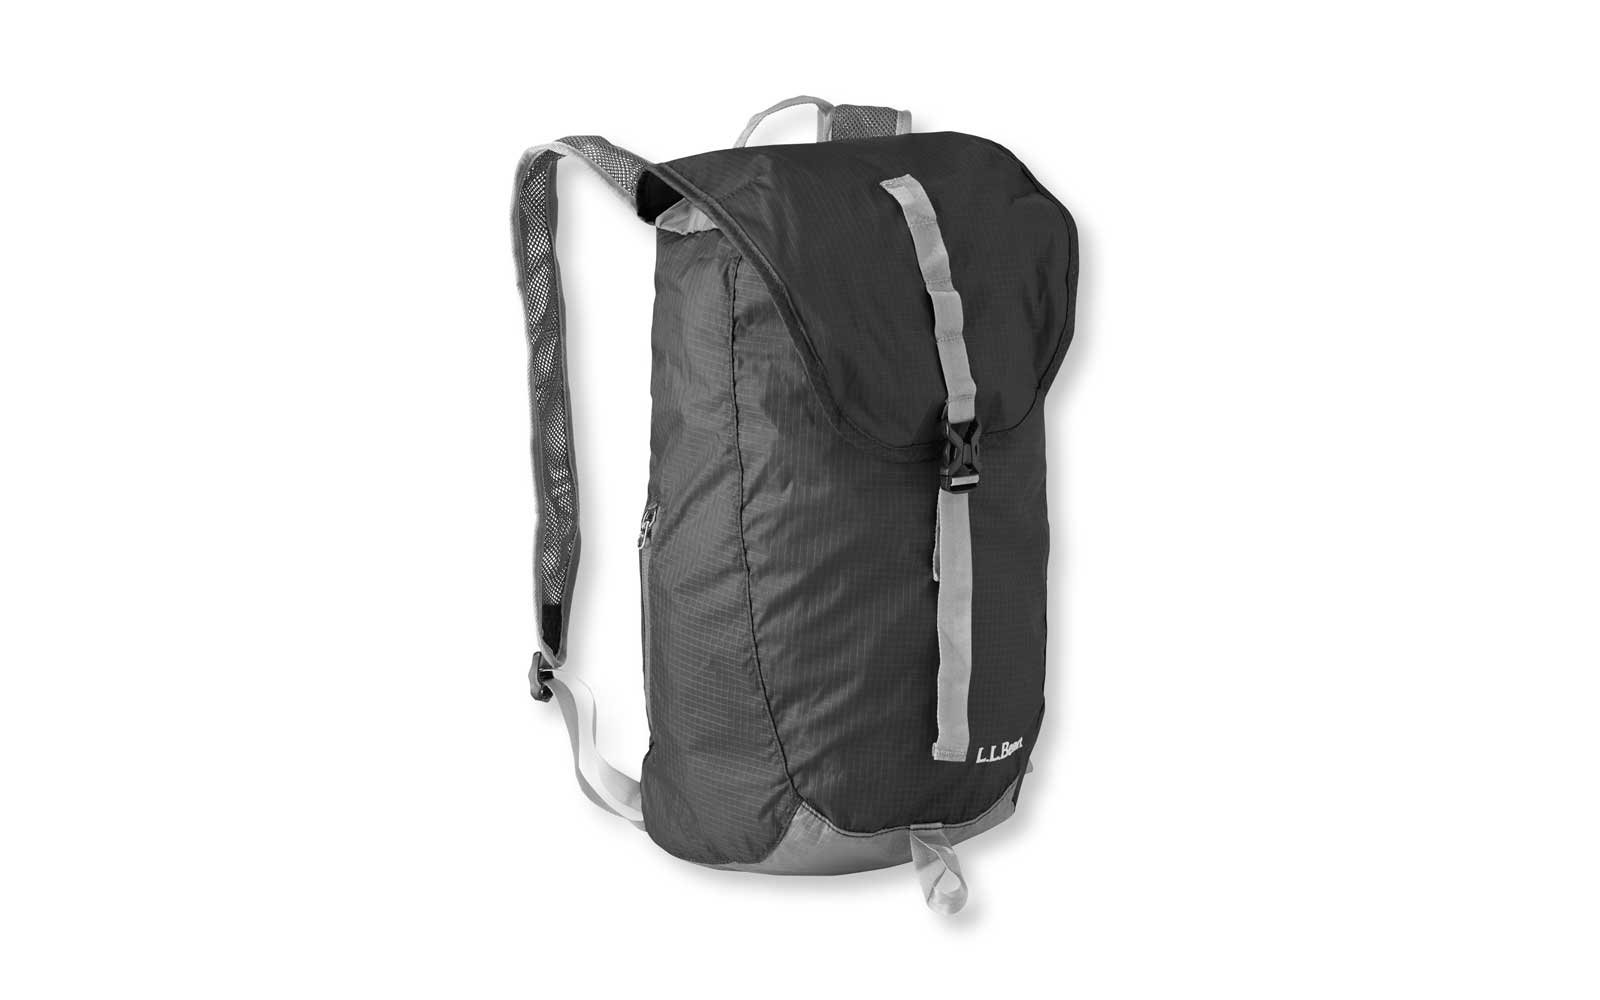 llbean packable backpack